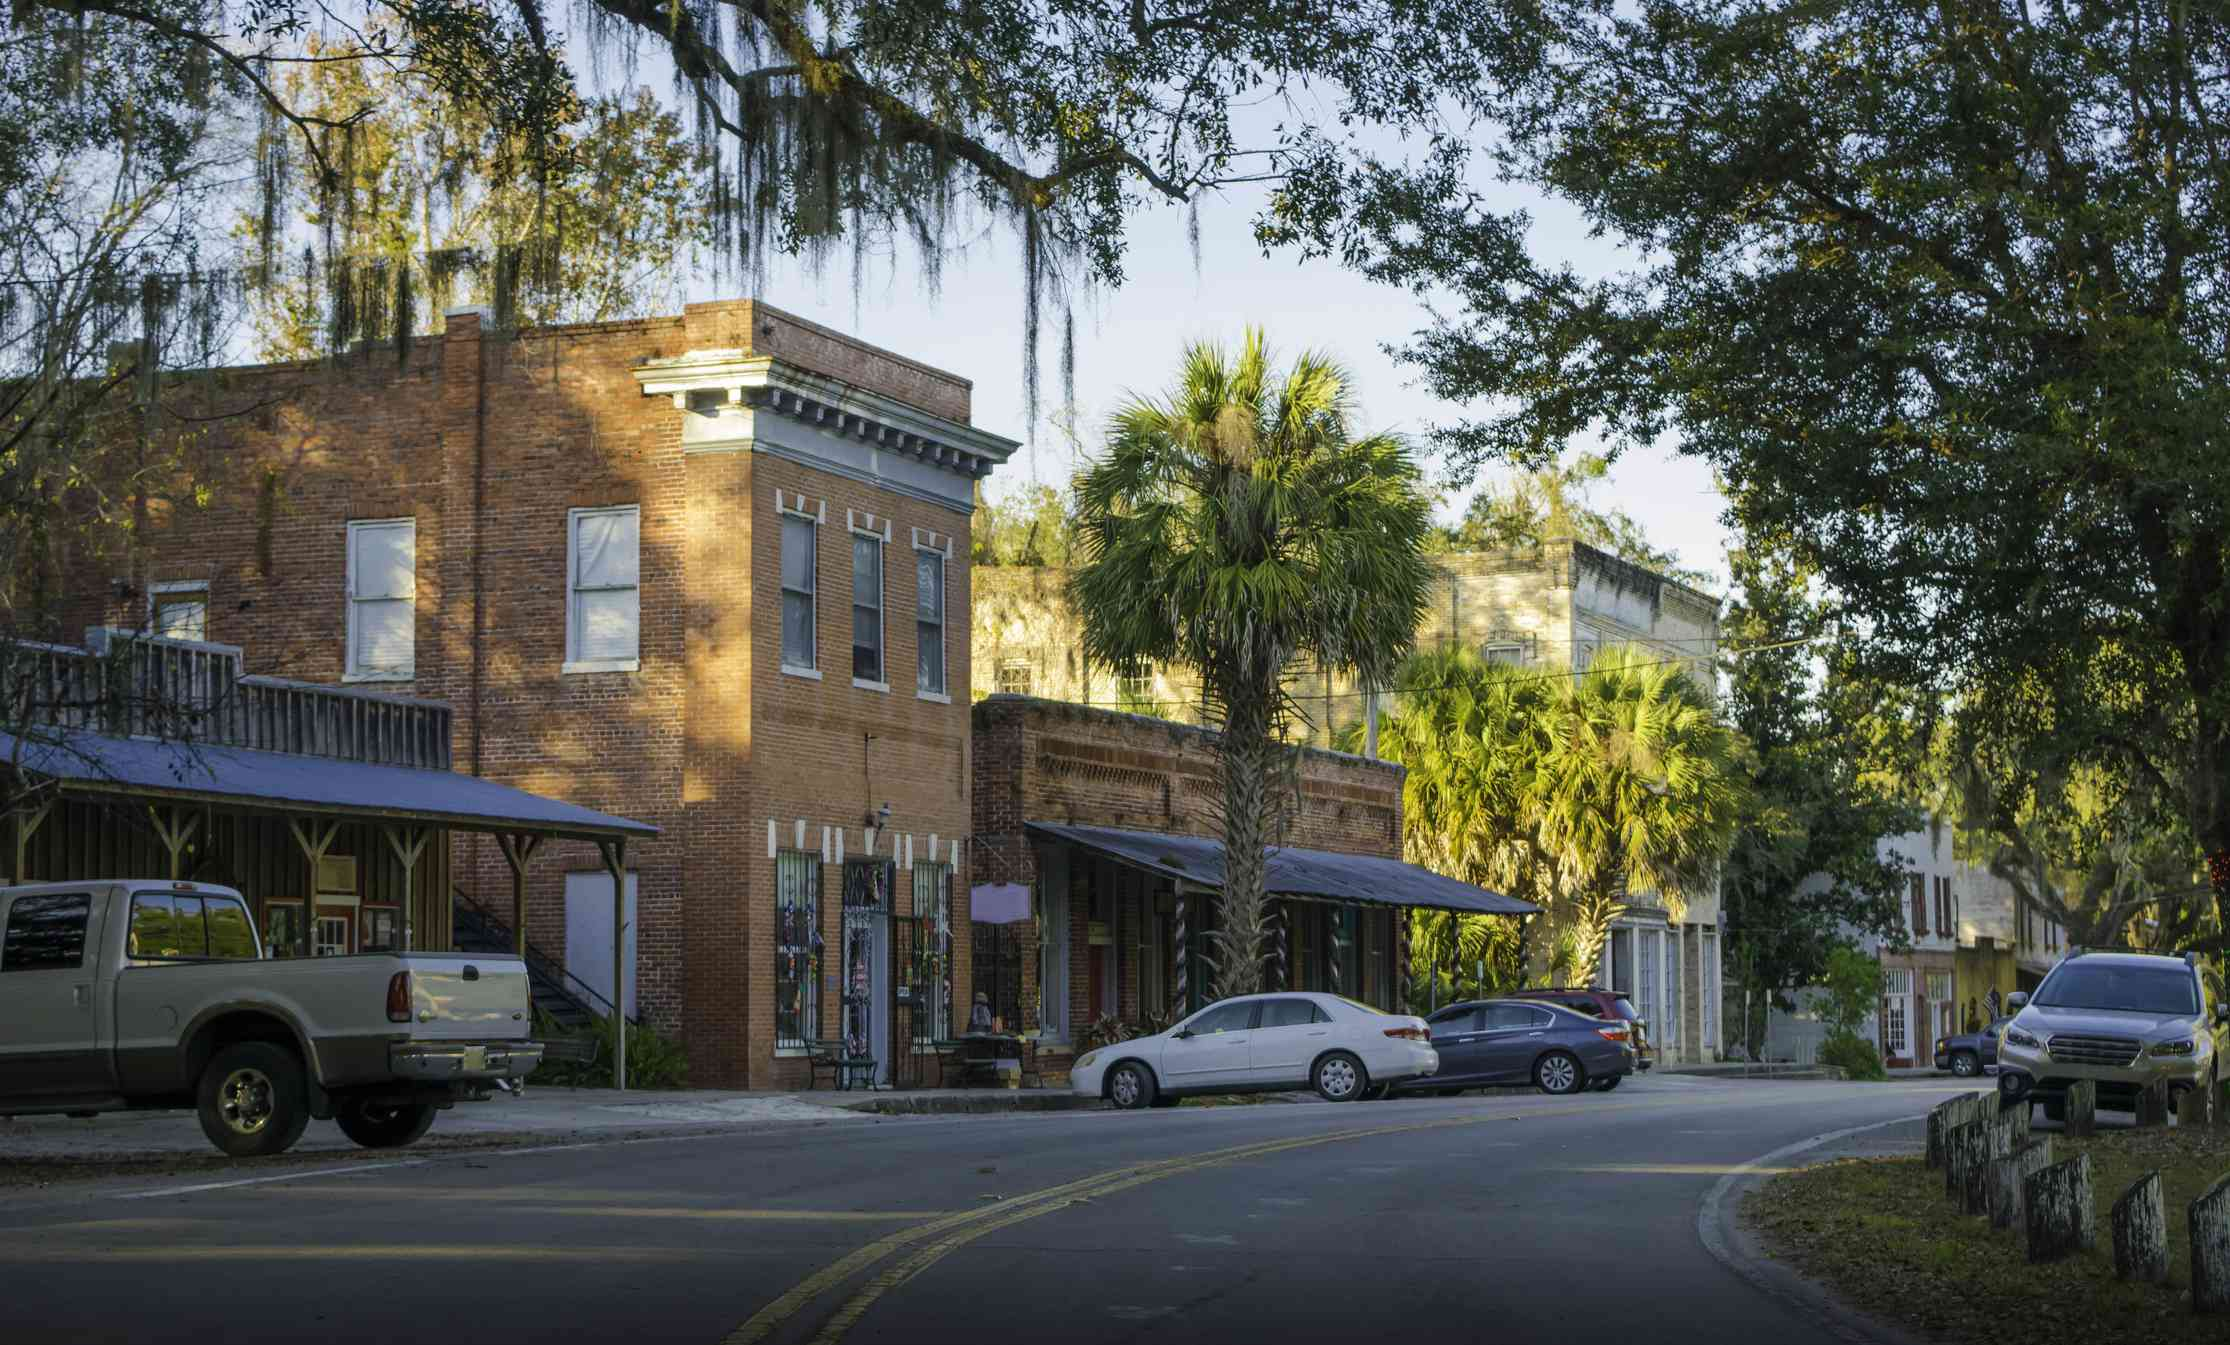 brick buildings on a curving road with a lot of trees in a small florida town